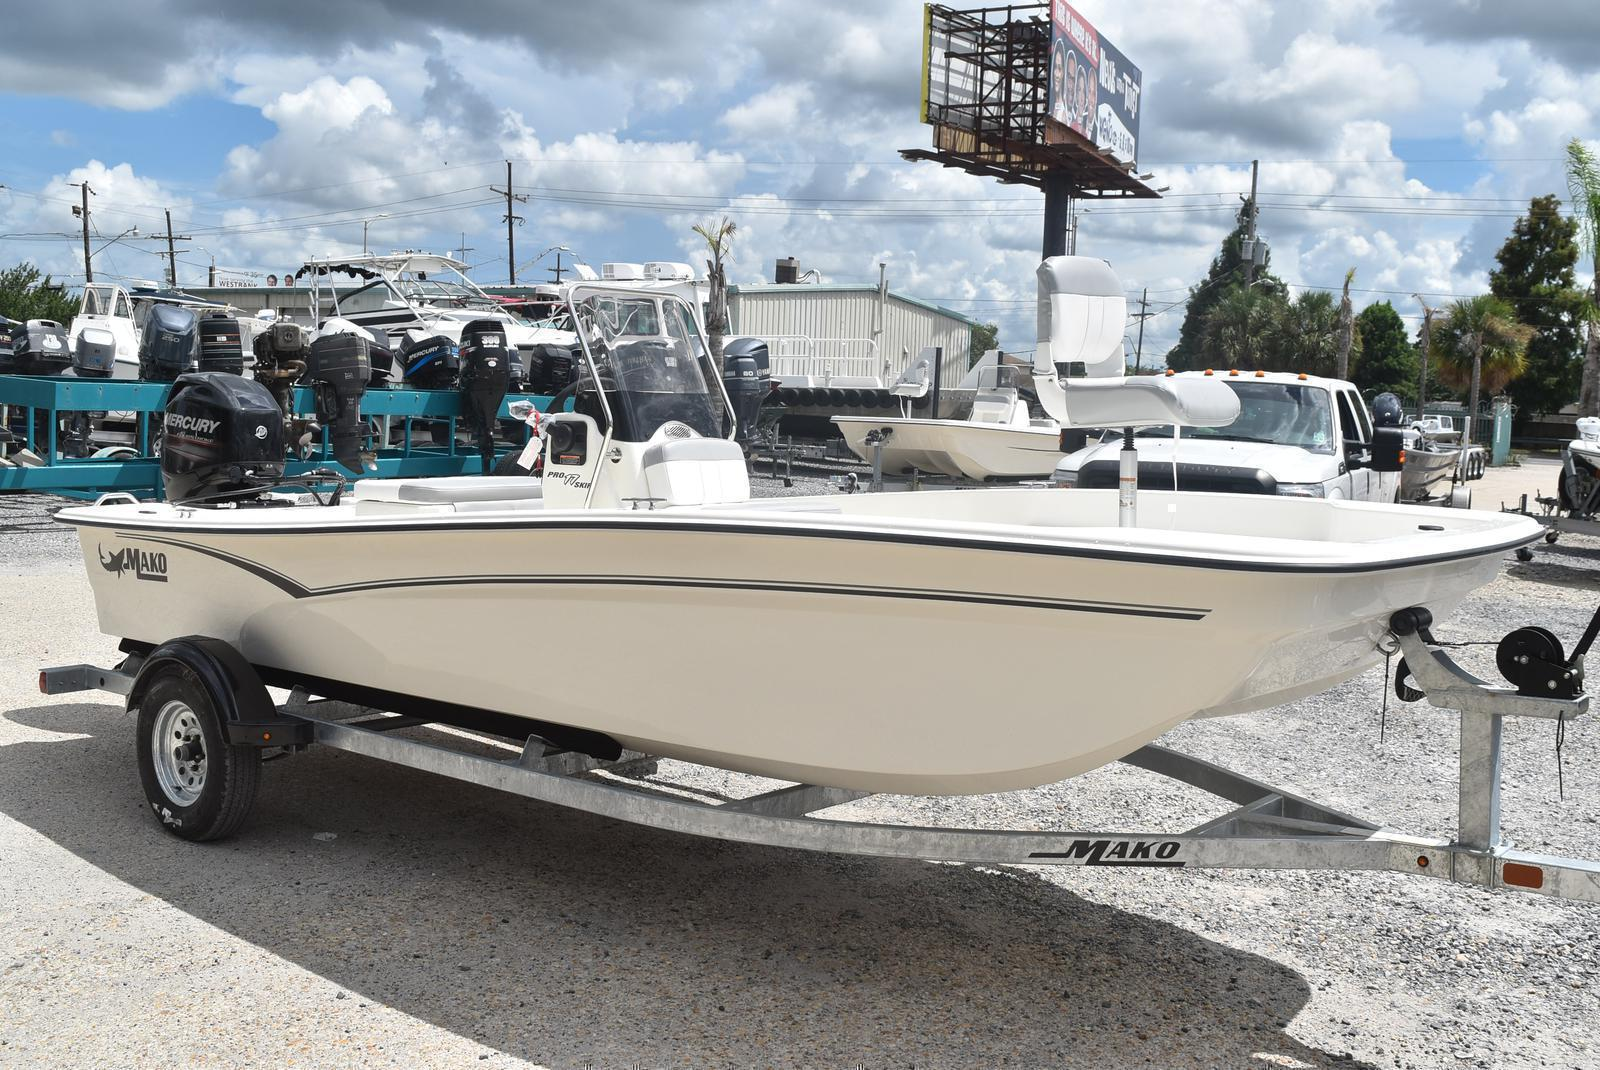 2020 Mako boat for sale, model of the boat is Pro Skiff 17, 75 ELPT & Image # 682 of 702